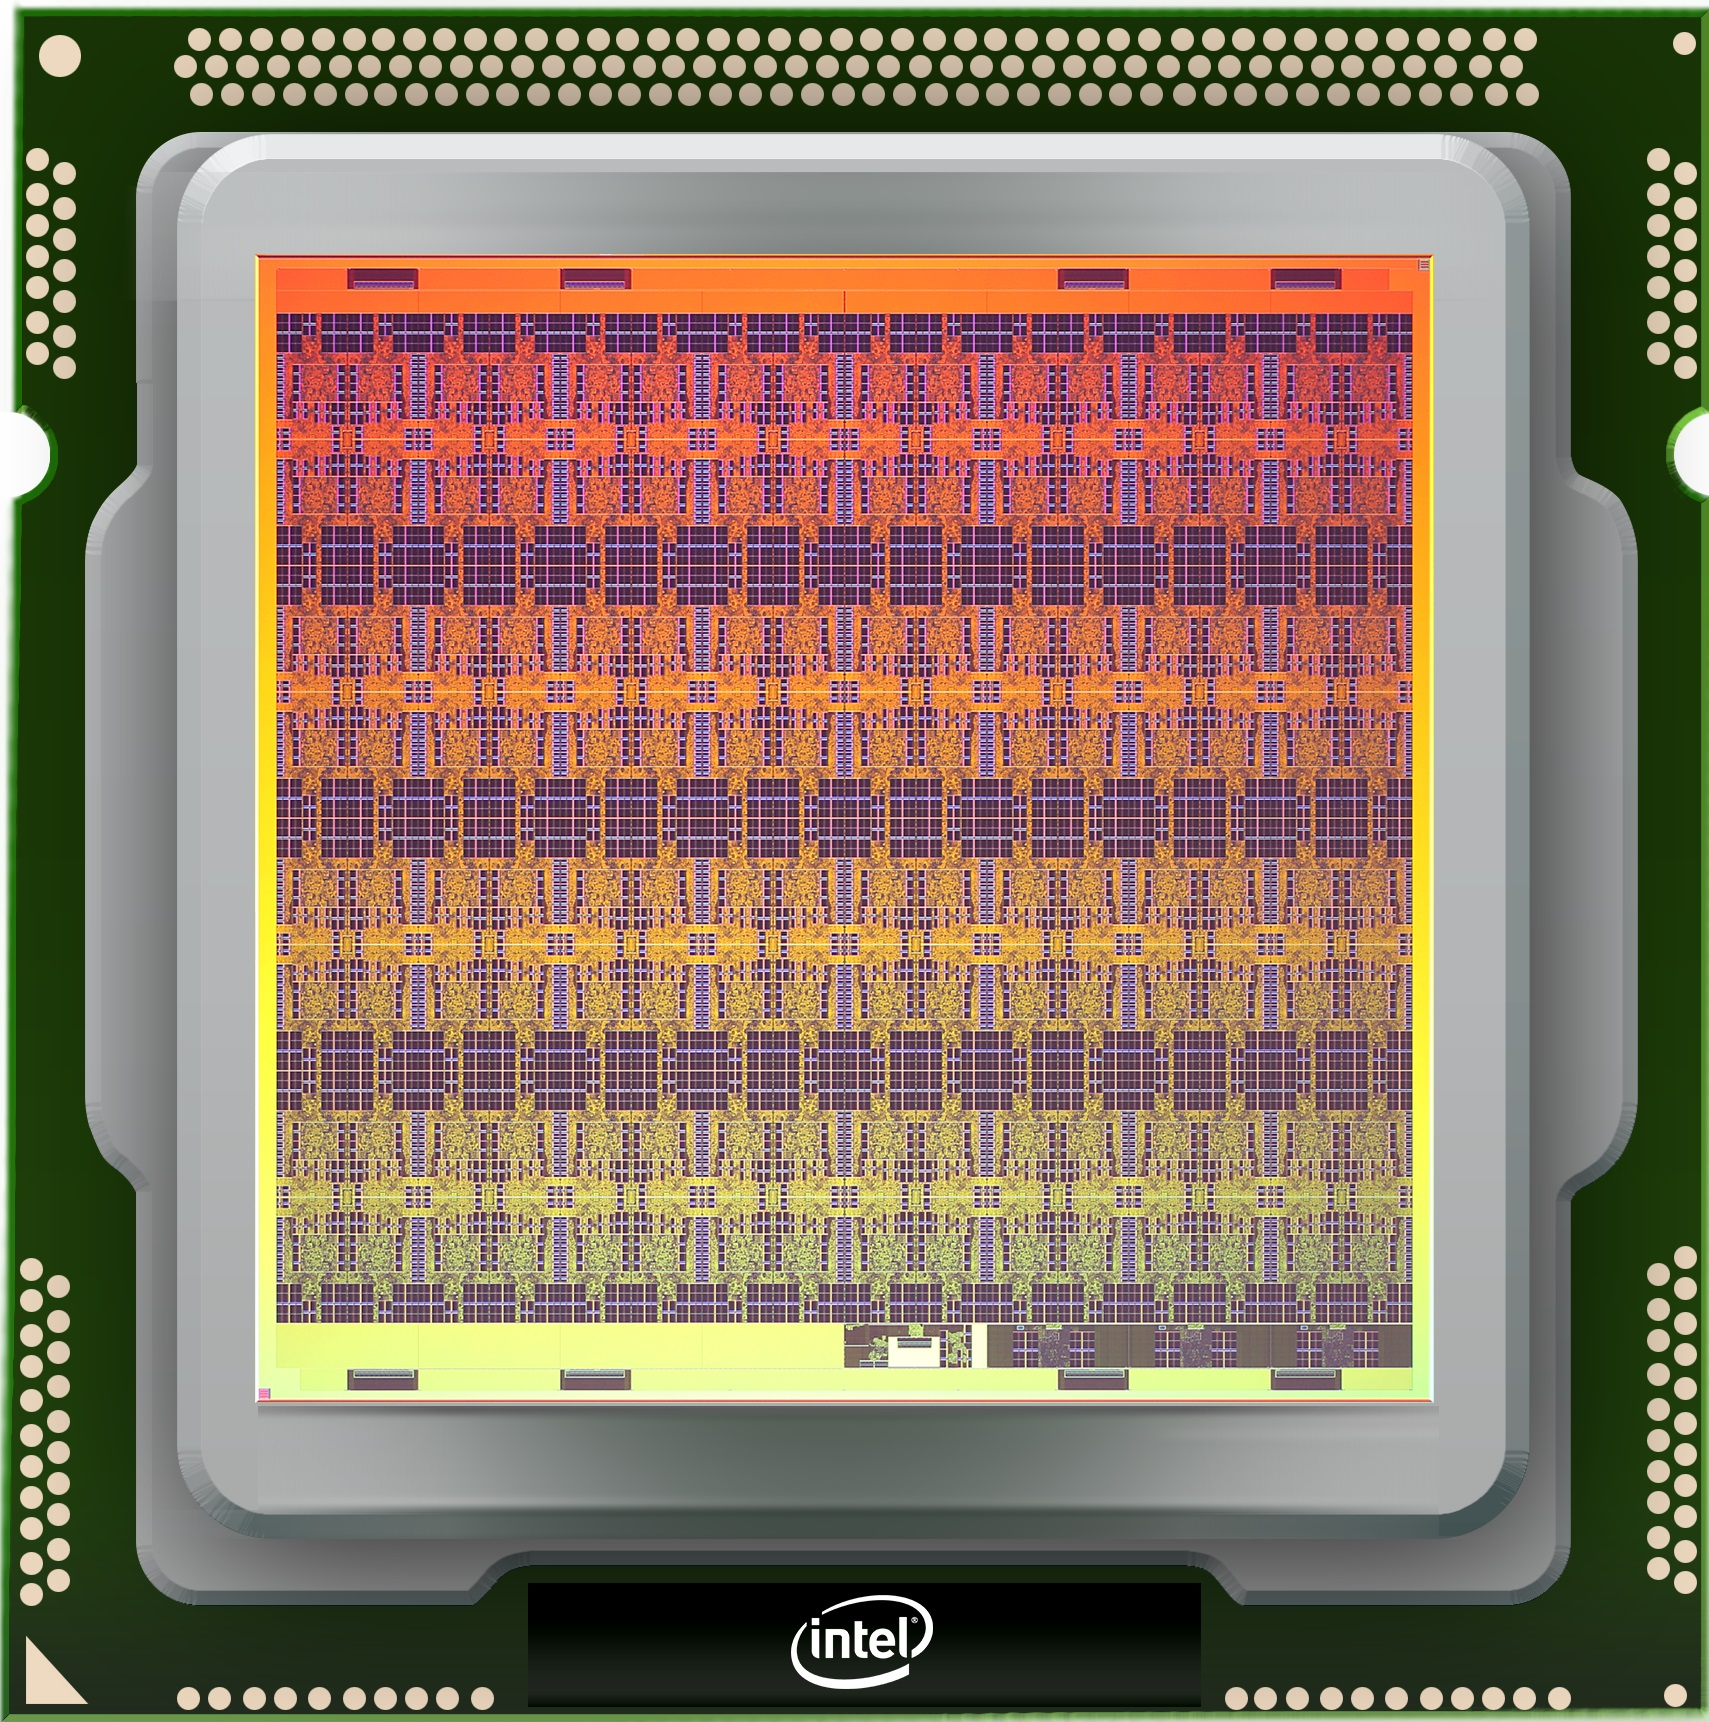 Intel quantum computing